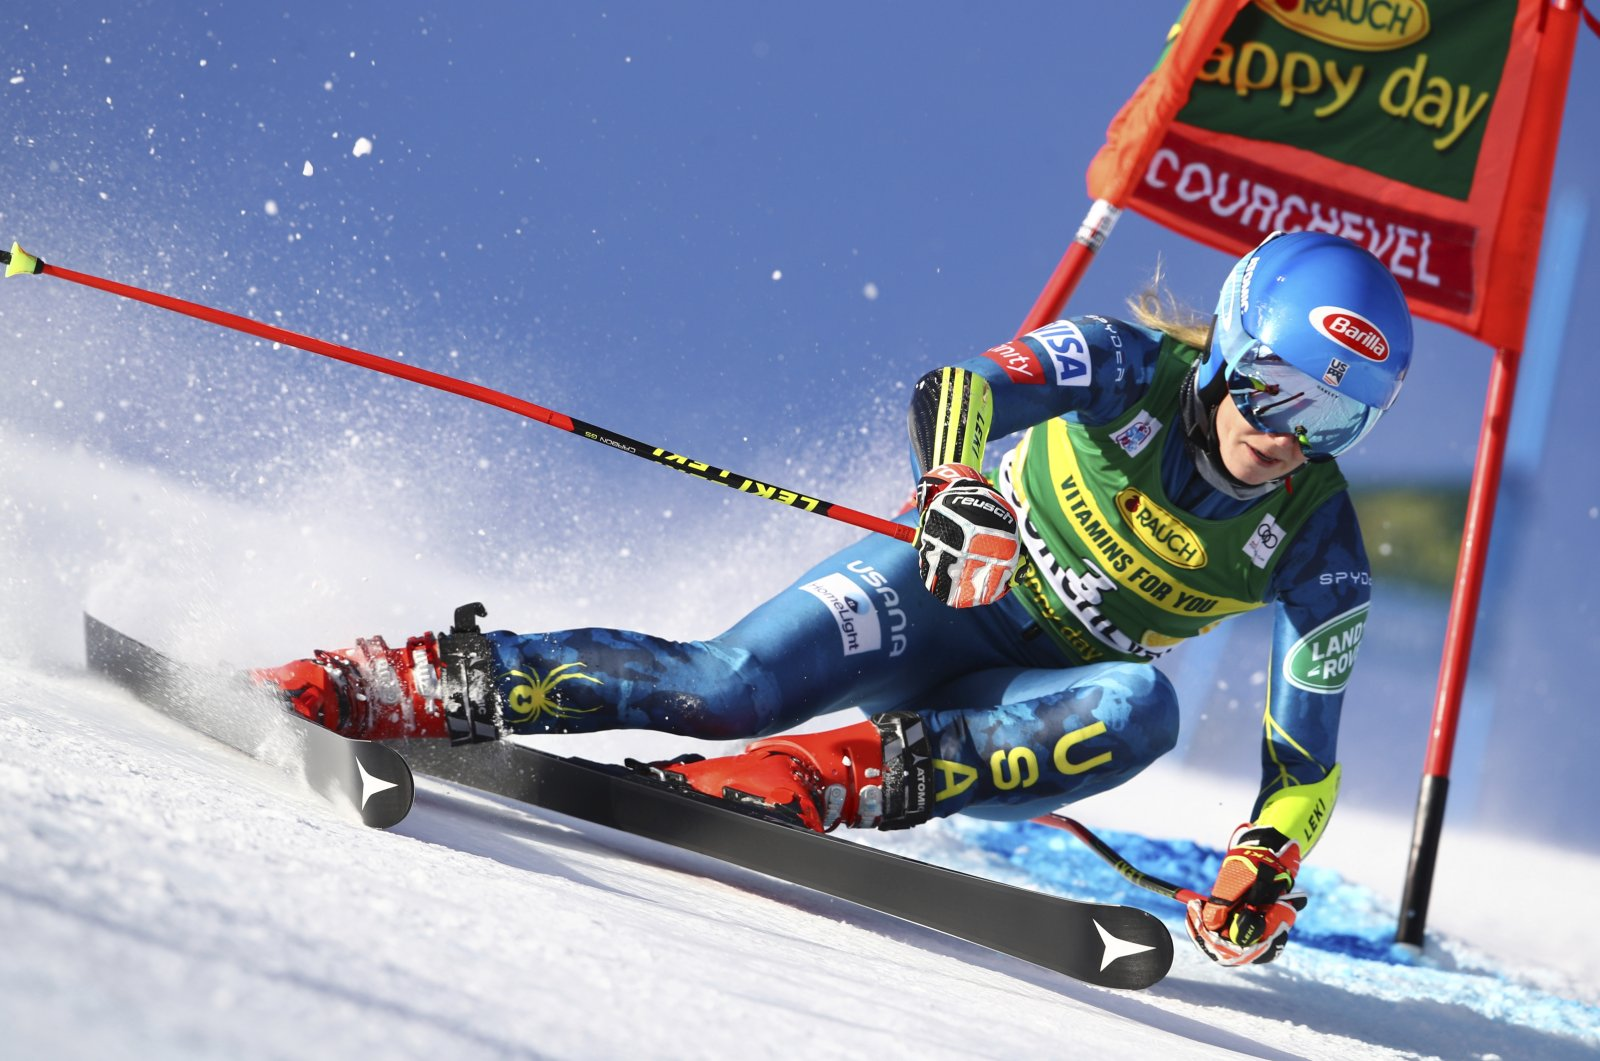 Mikaela Shiffrin speeds down the course during an alpine ski women's World Cup giant slalom in Courchevel, France, Dec. 14, 2020. (AP Photo)